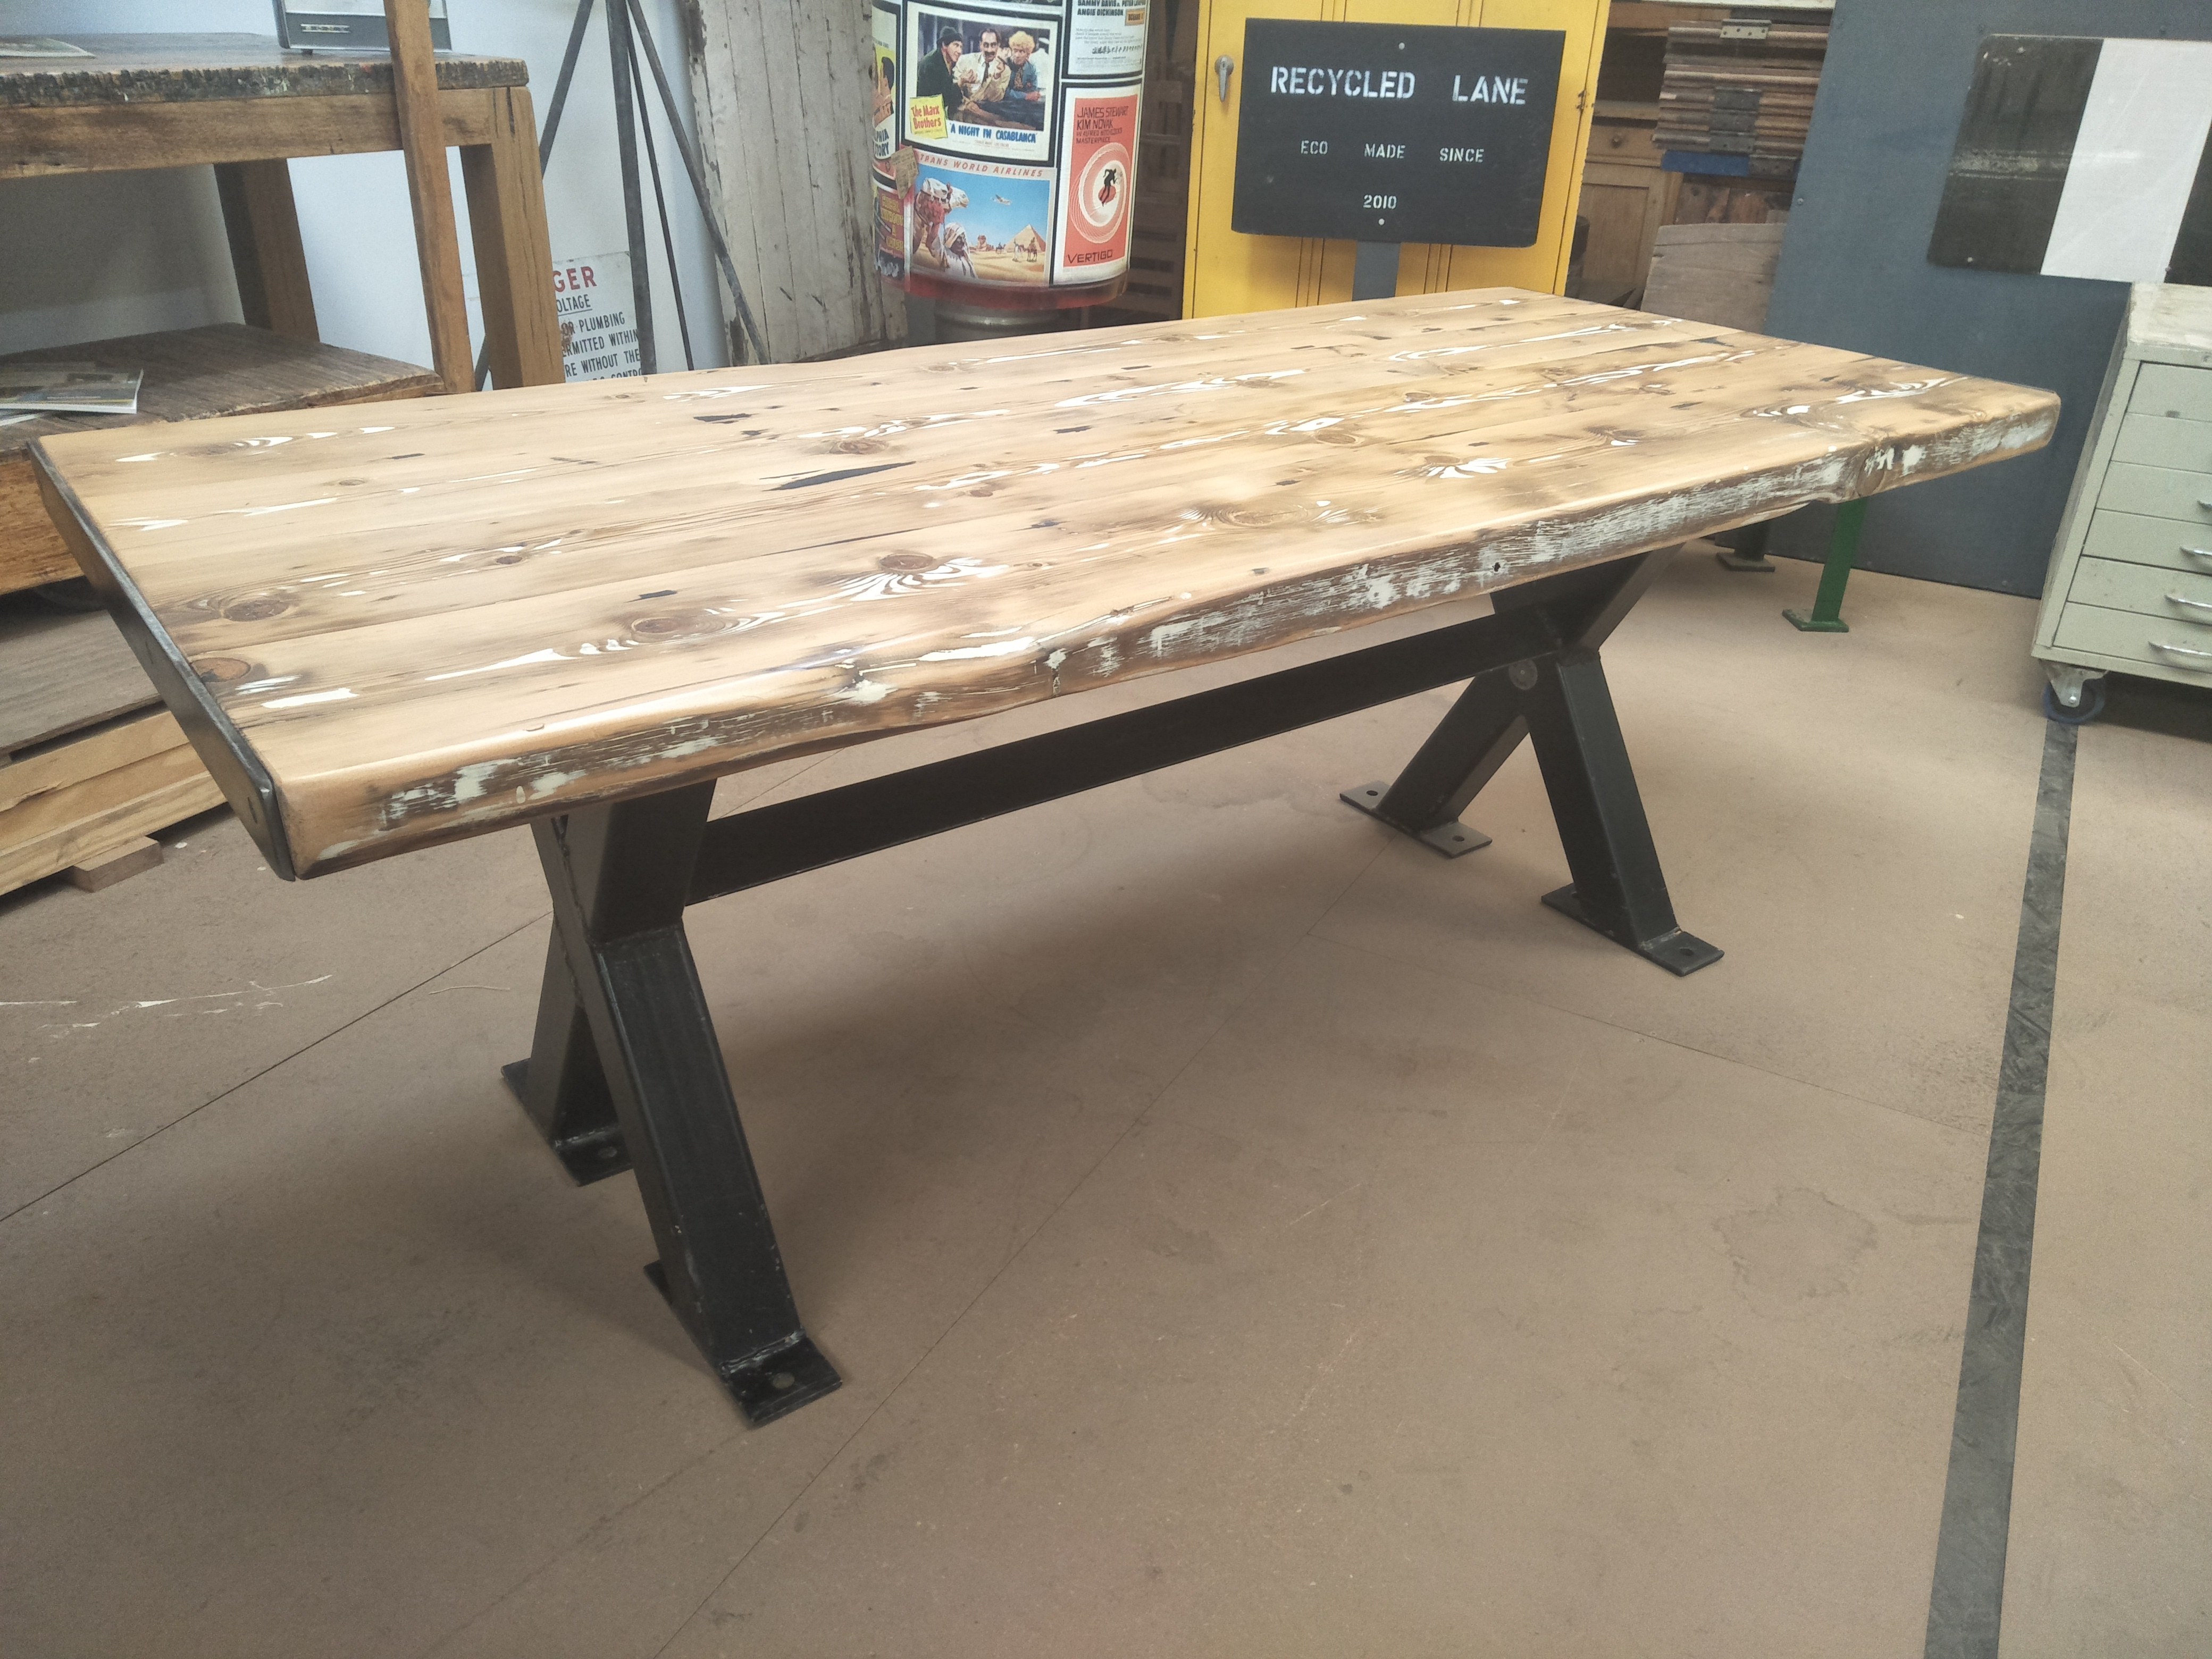 Black metal frame table with recycled oregon top